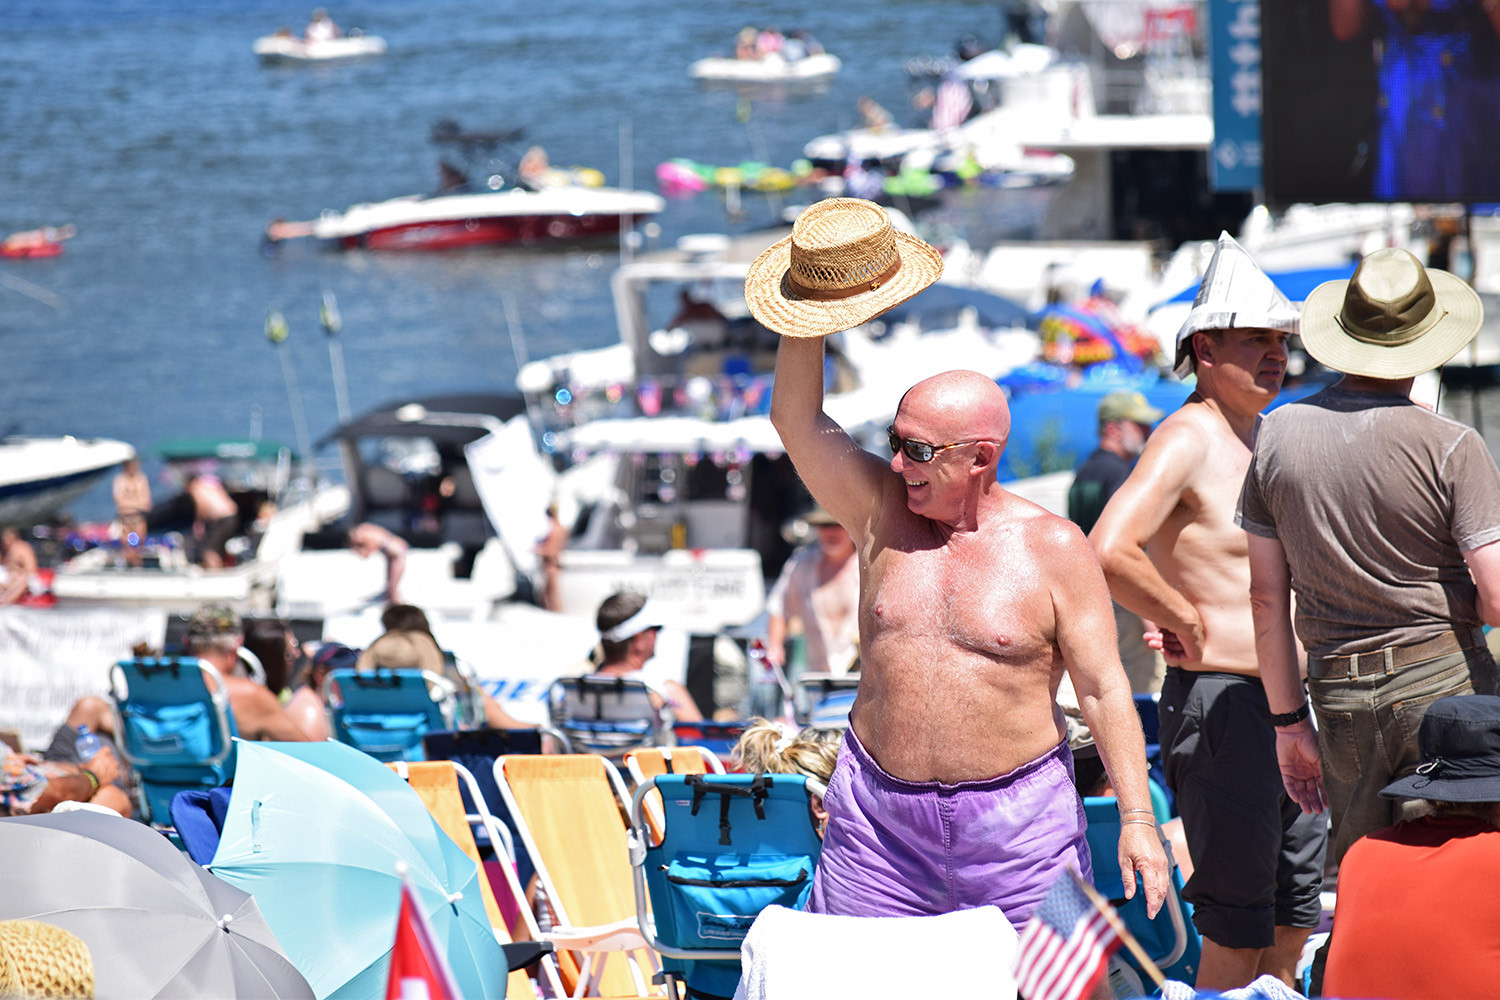 A joyful Blues Fest attendee waves their hat to fellow sunbathers on the shore of the Columbia River. Portland, Oregon.